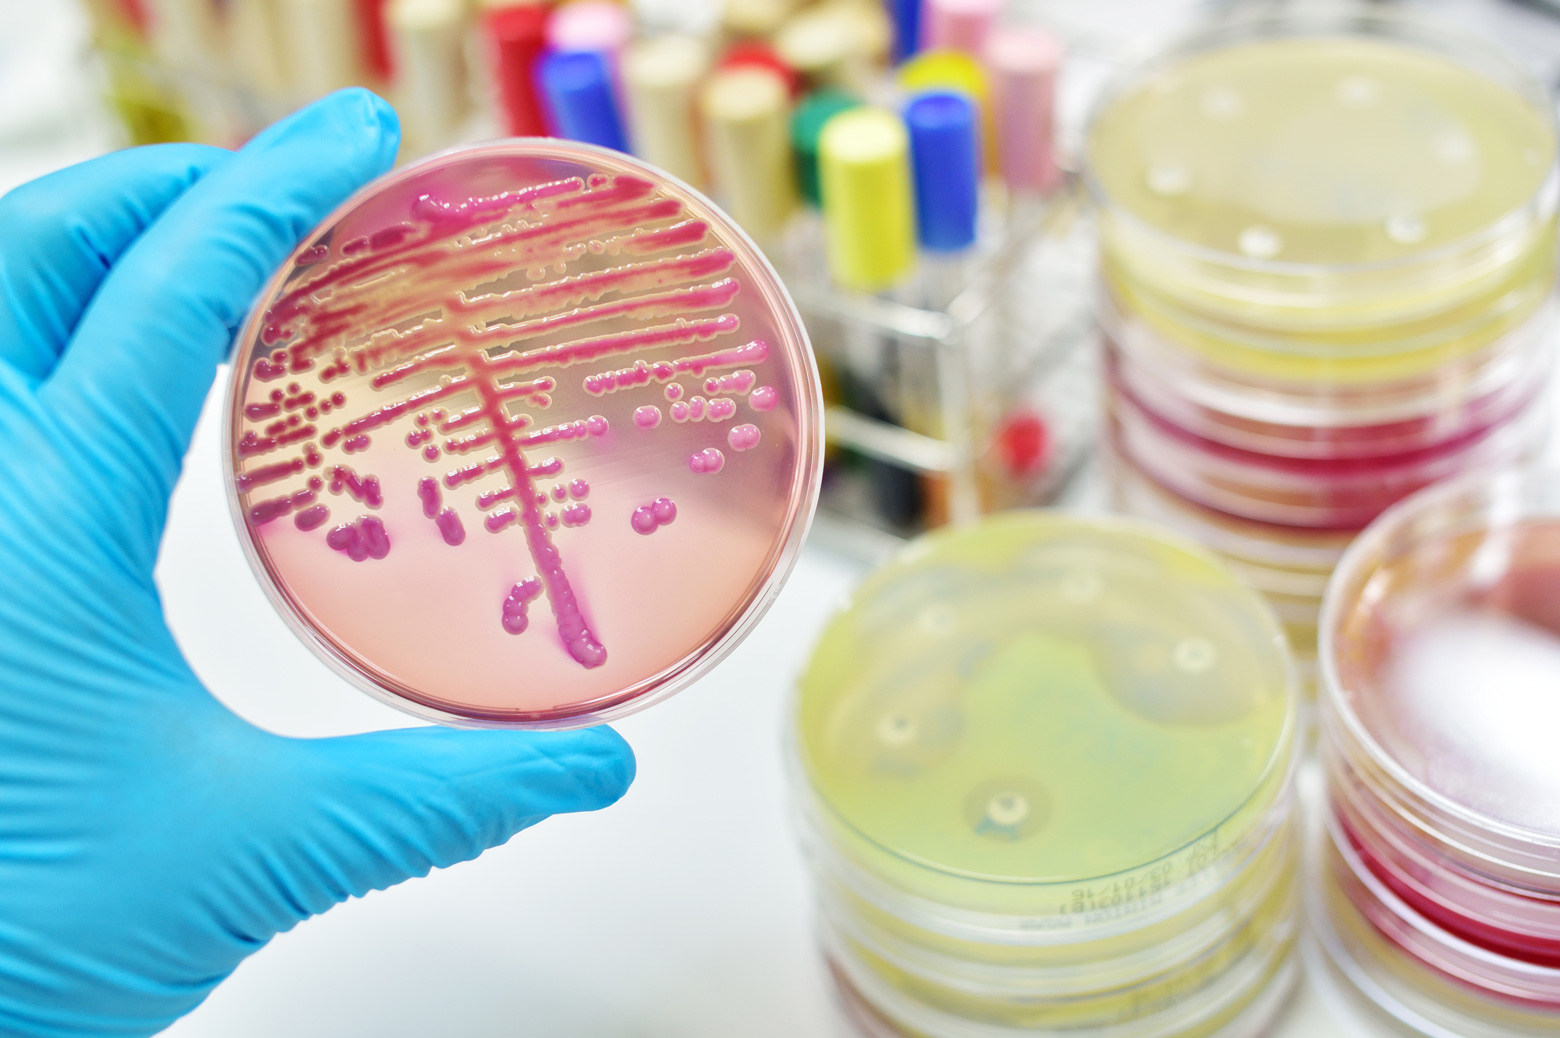 Colony of bacteria in culture medium plate. Getty Images